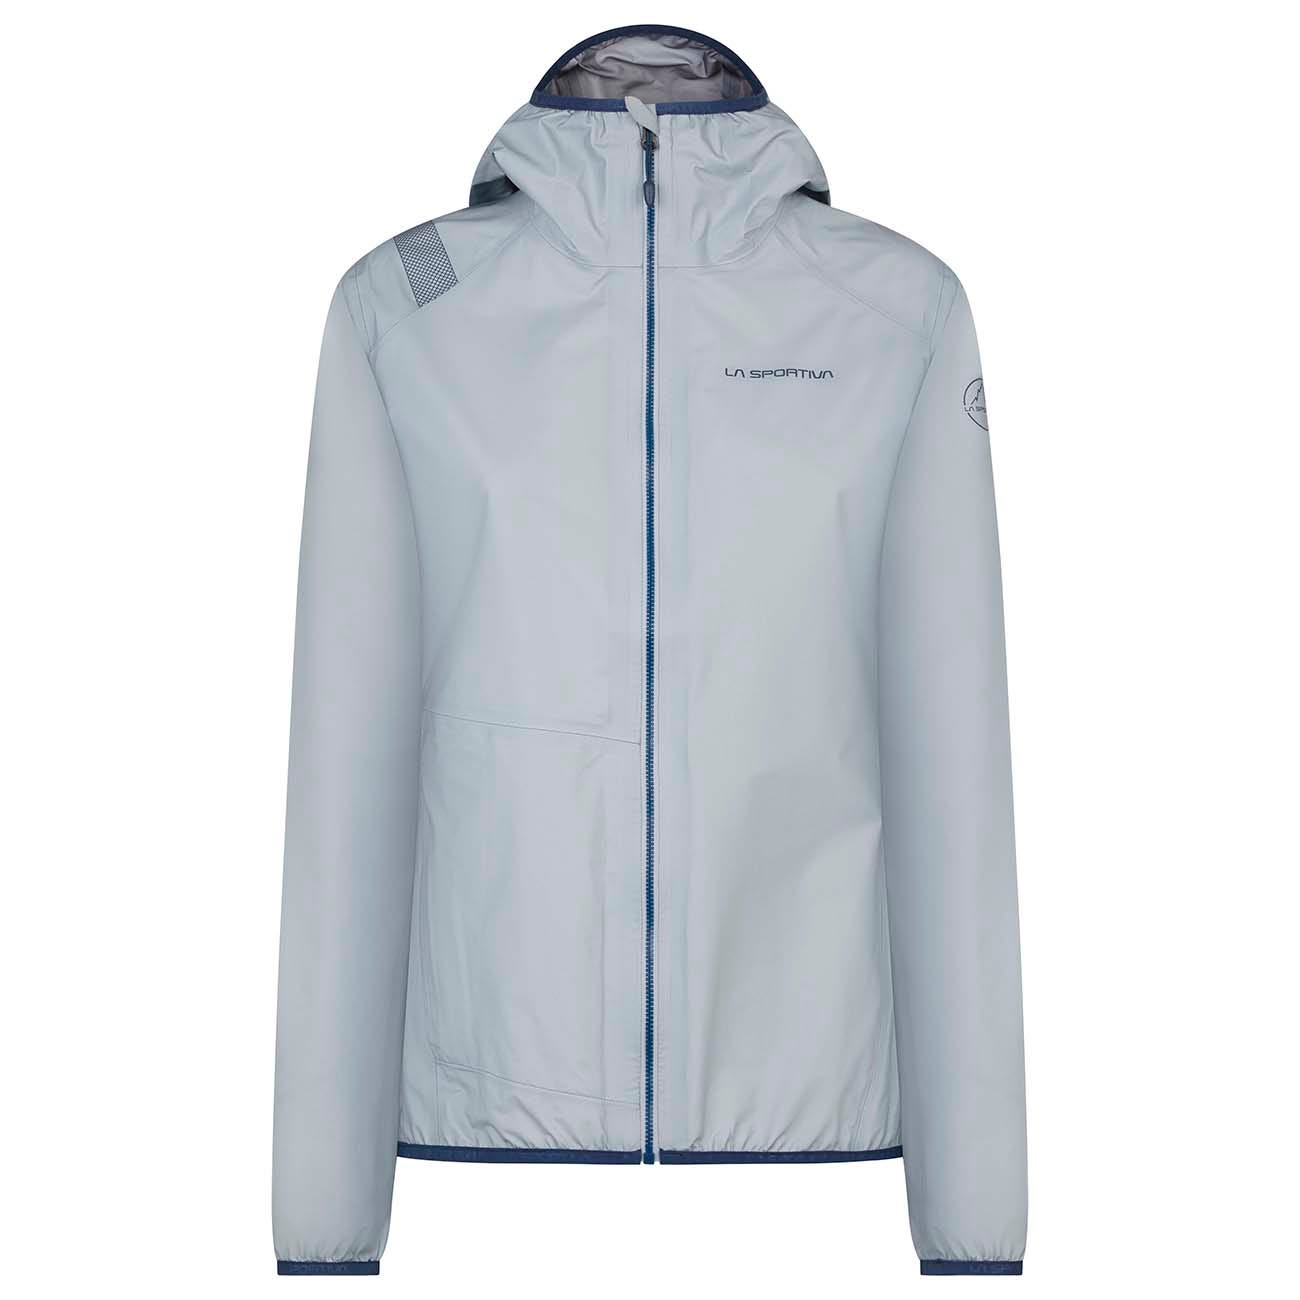 La Sportiva Iliad Waterproof Jacket Womens